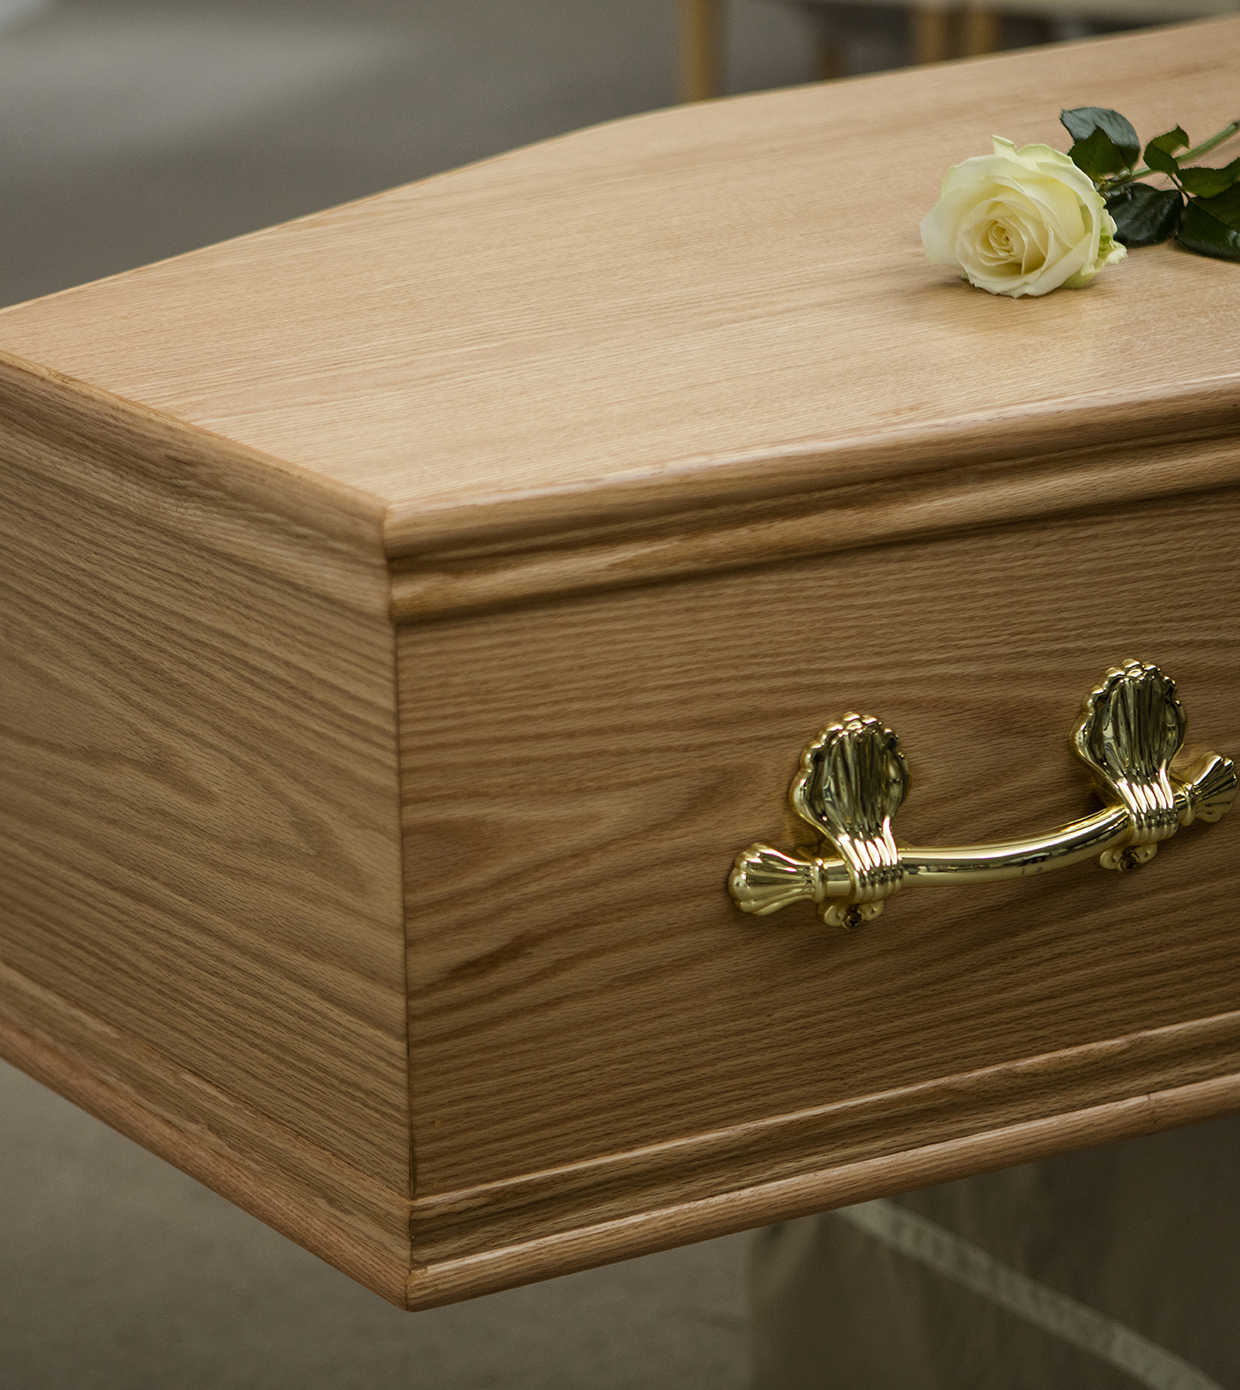 Low Cost Funerals - We understand that a funeral often presents unexpected costs. We offer a simple funeral service option on the condition that it is carried out on a weekday at a time of our choosing.This option includes hearse, pallbearers and a simple coffin, removal of the deceased from the place of death to the funeral, and to then to the cemetery or crematorium.The price for this funeral service is €1,550.This option does not include extra charges, such as removal of the deceased to our funeral home, care or presentation of the body, or limousines.All third party fees, such as those for flowers, the cemetery,or crematorium fees, will be added to our service charge.Payment terms are 30 days.